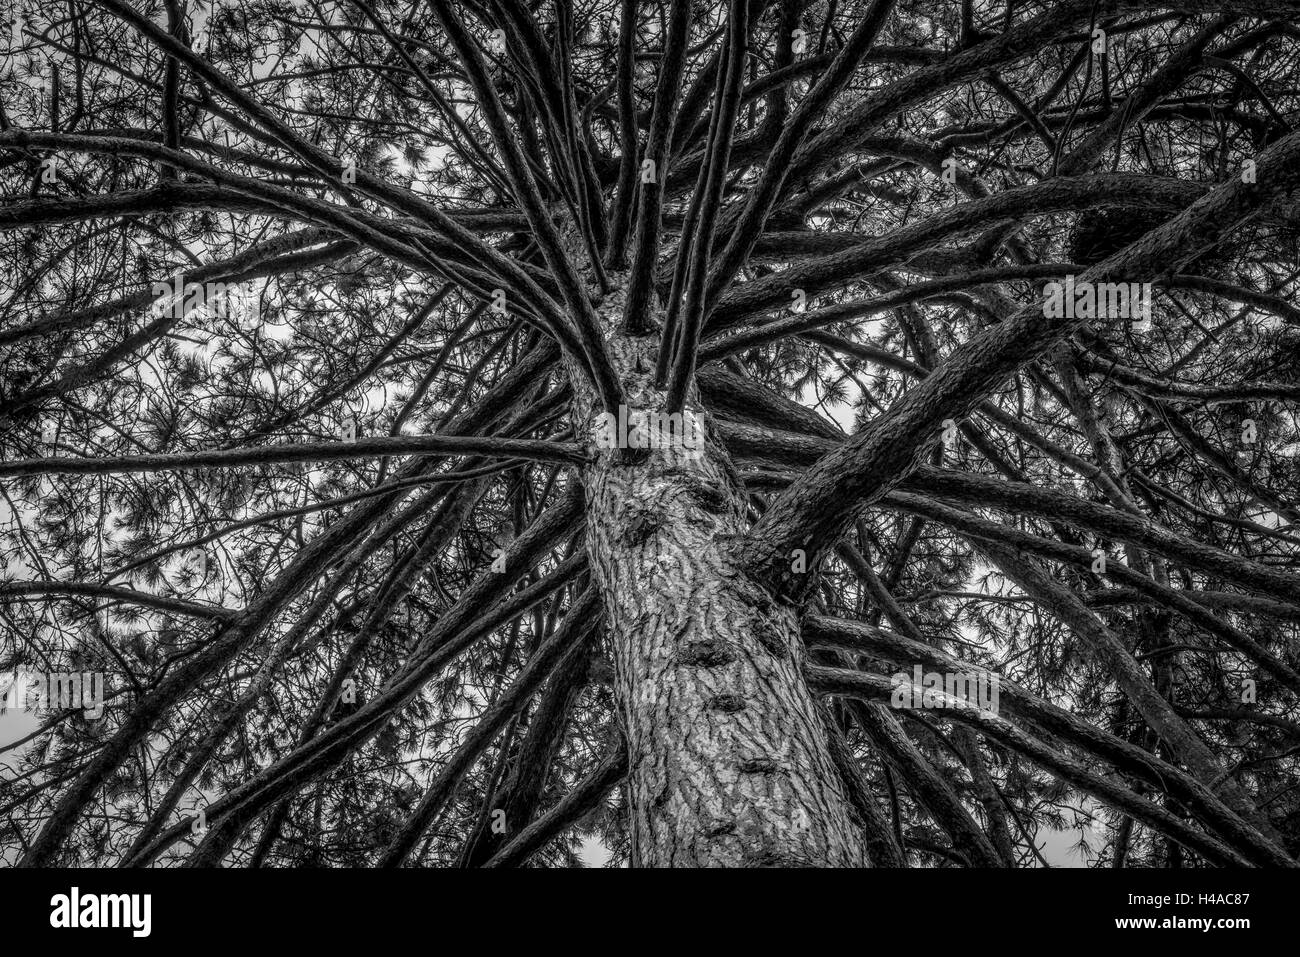 Pine tree branches - Stock Image